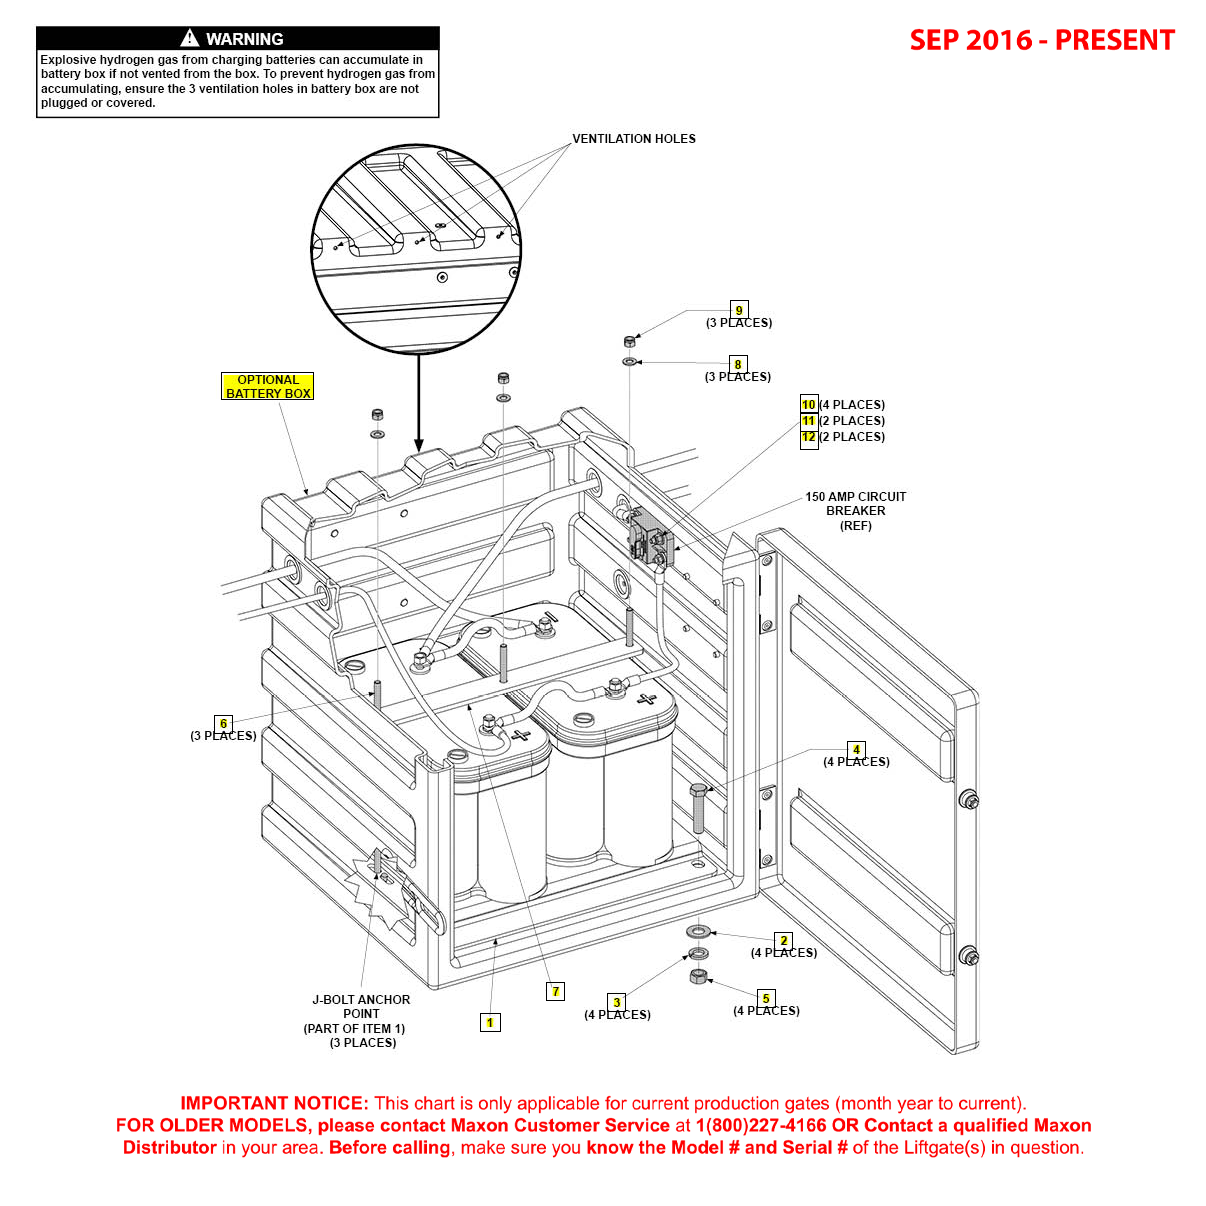 GPTWR (Sep 2016 - Present) Optional Battery Box Assembly Diagram